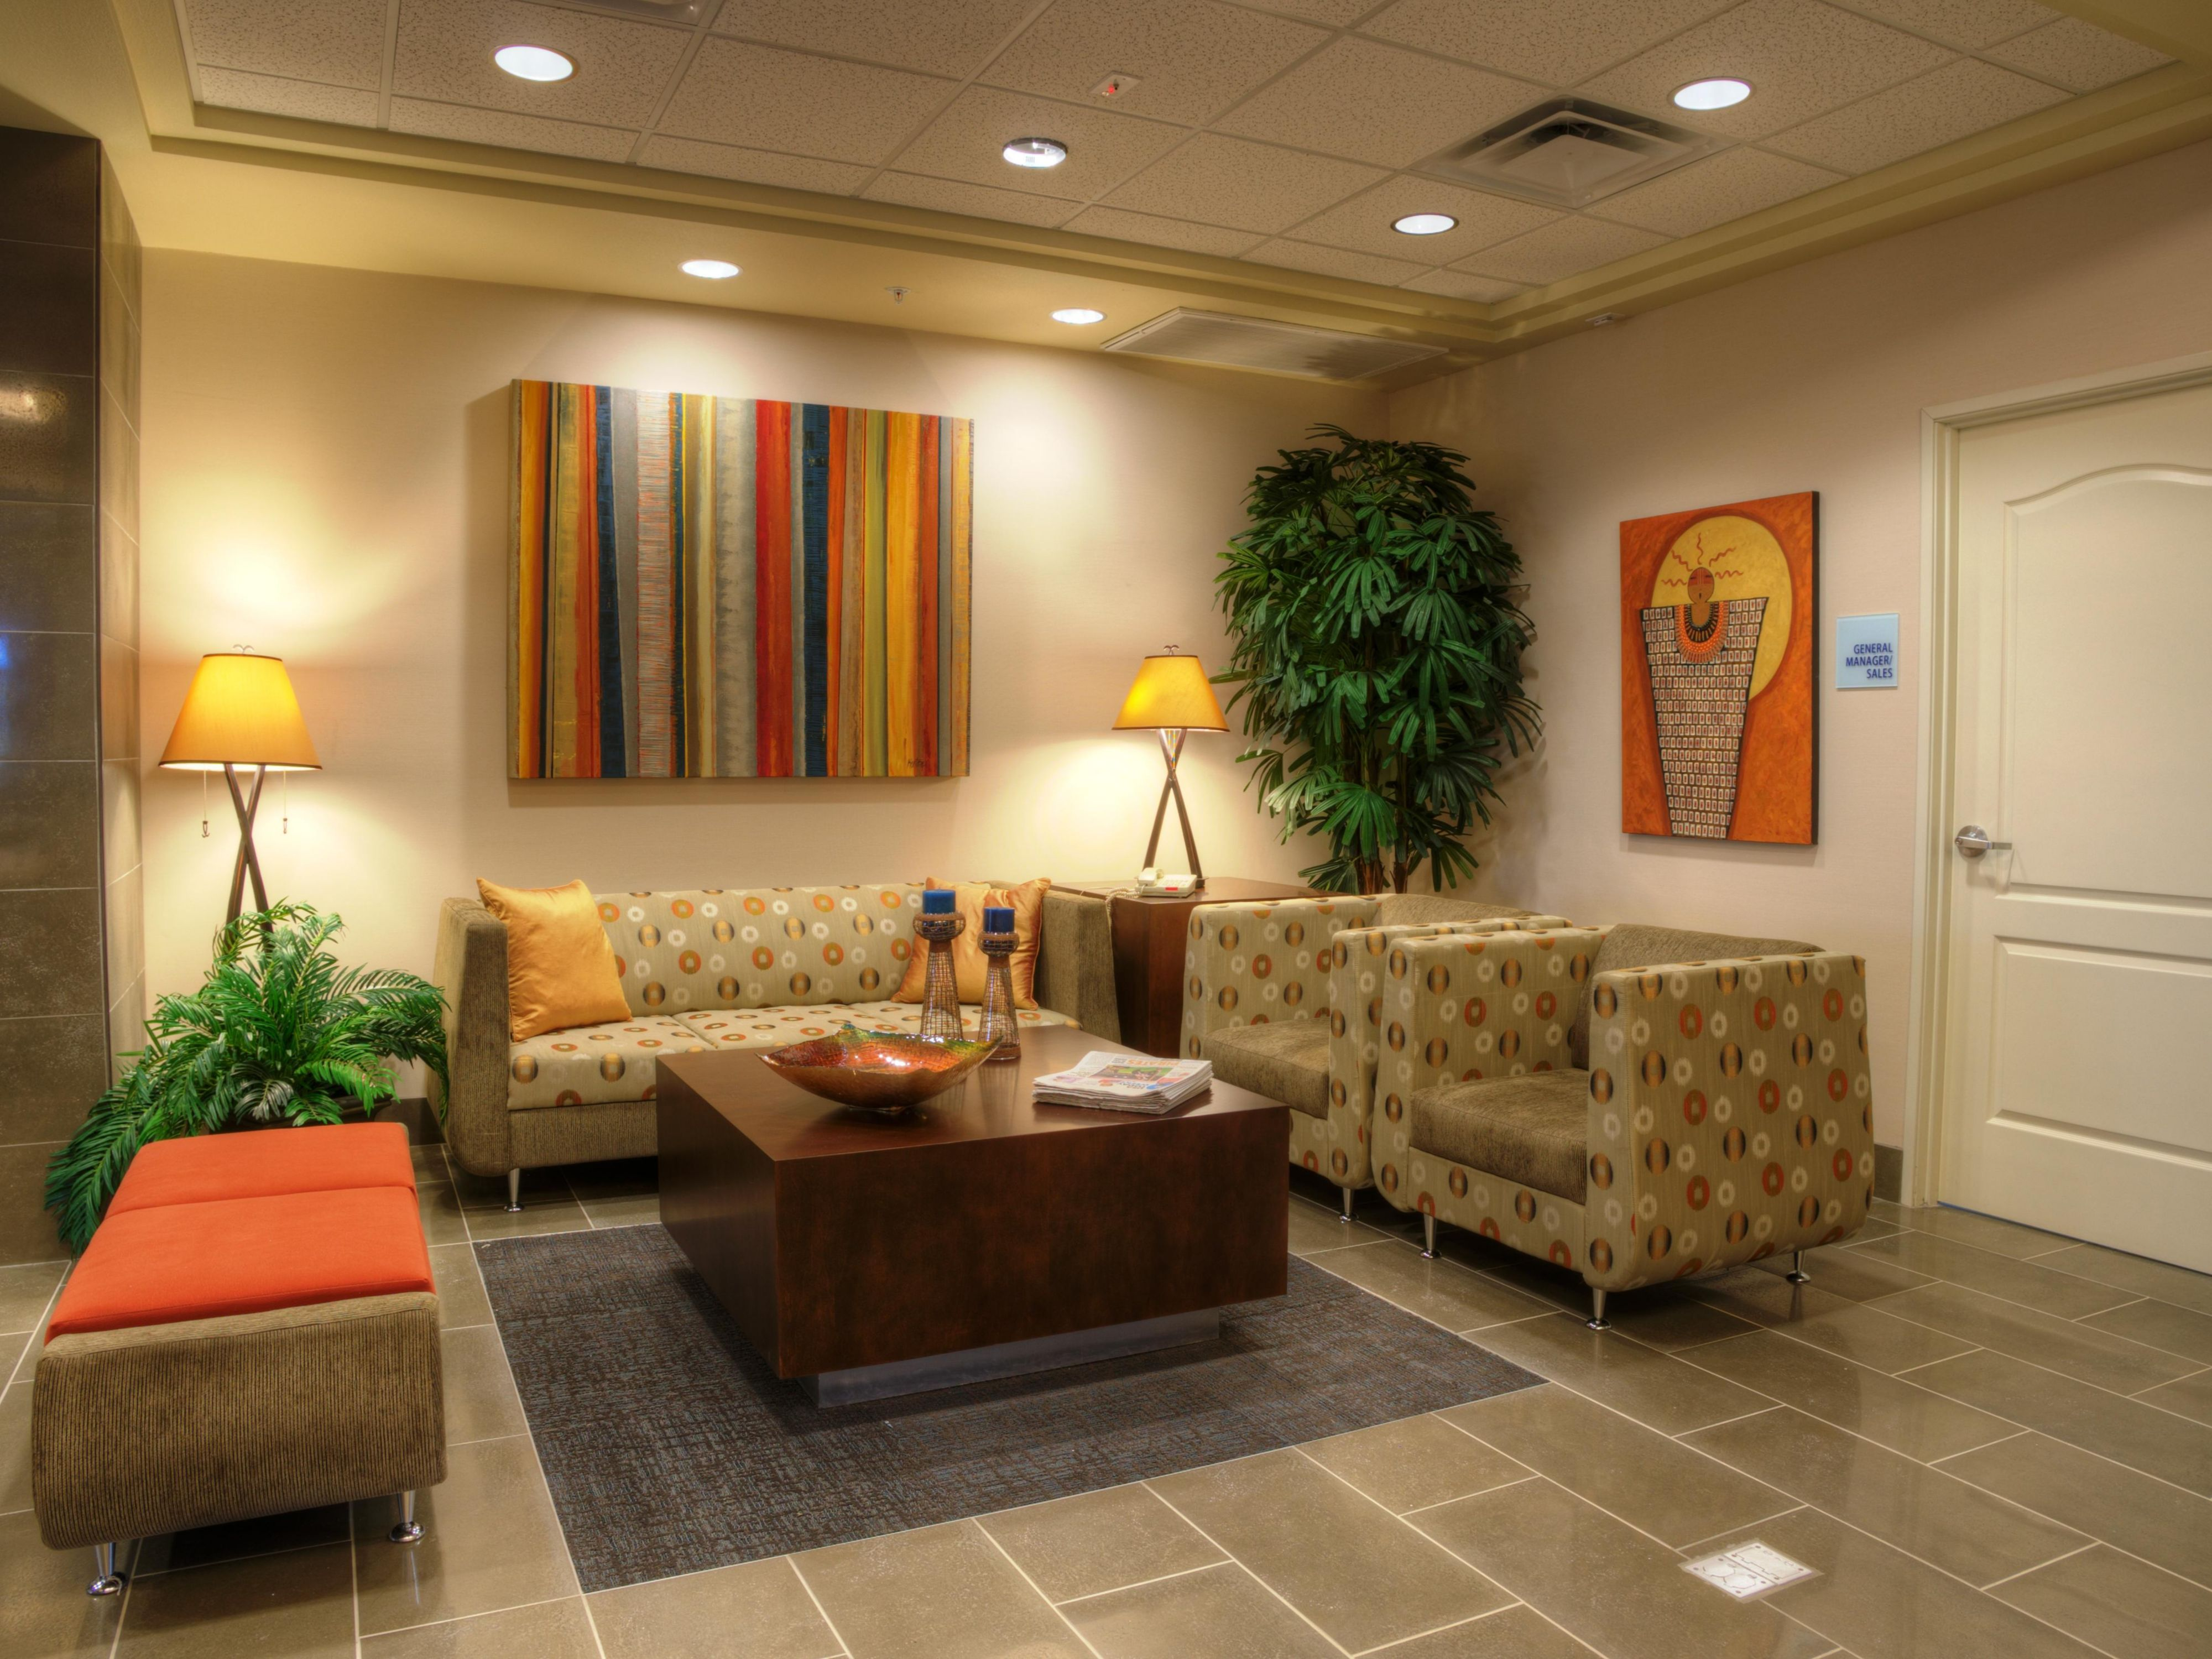 Lobby area of our new hotel by Cigna Healthcare